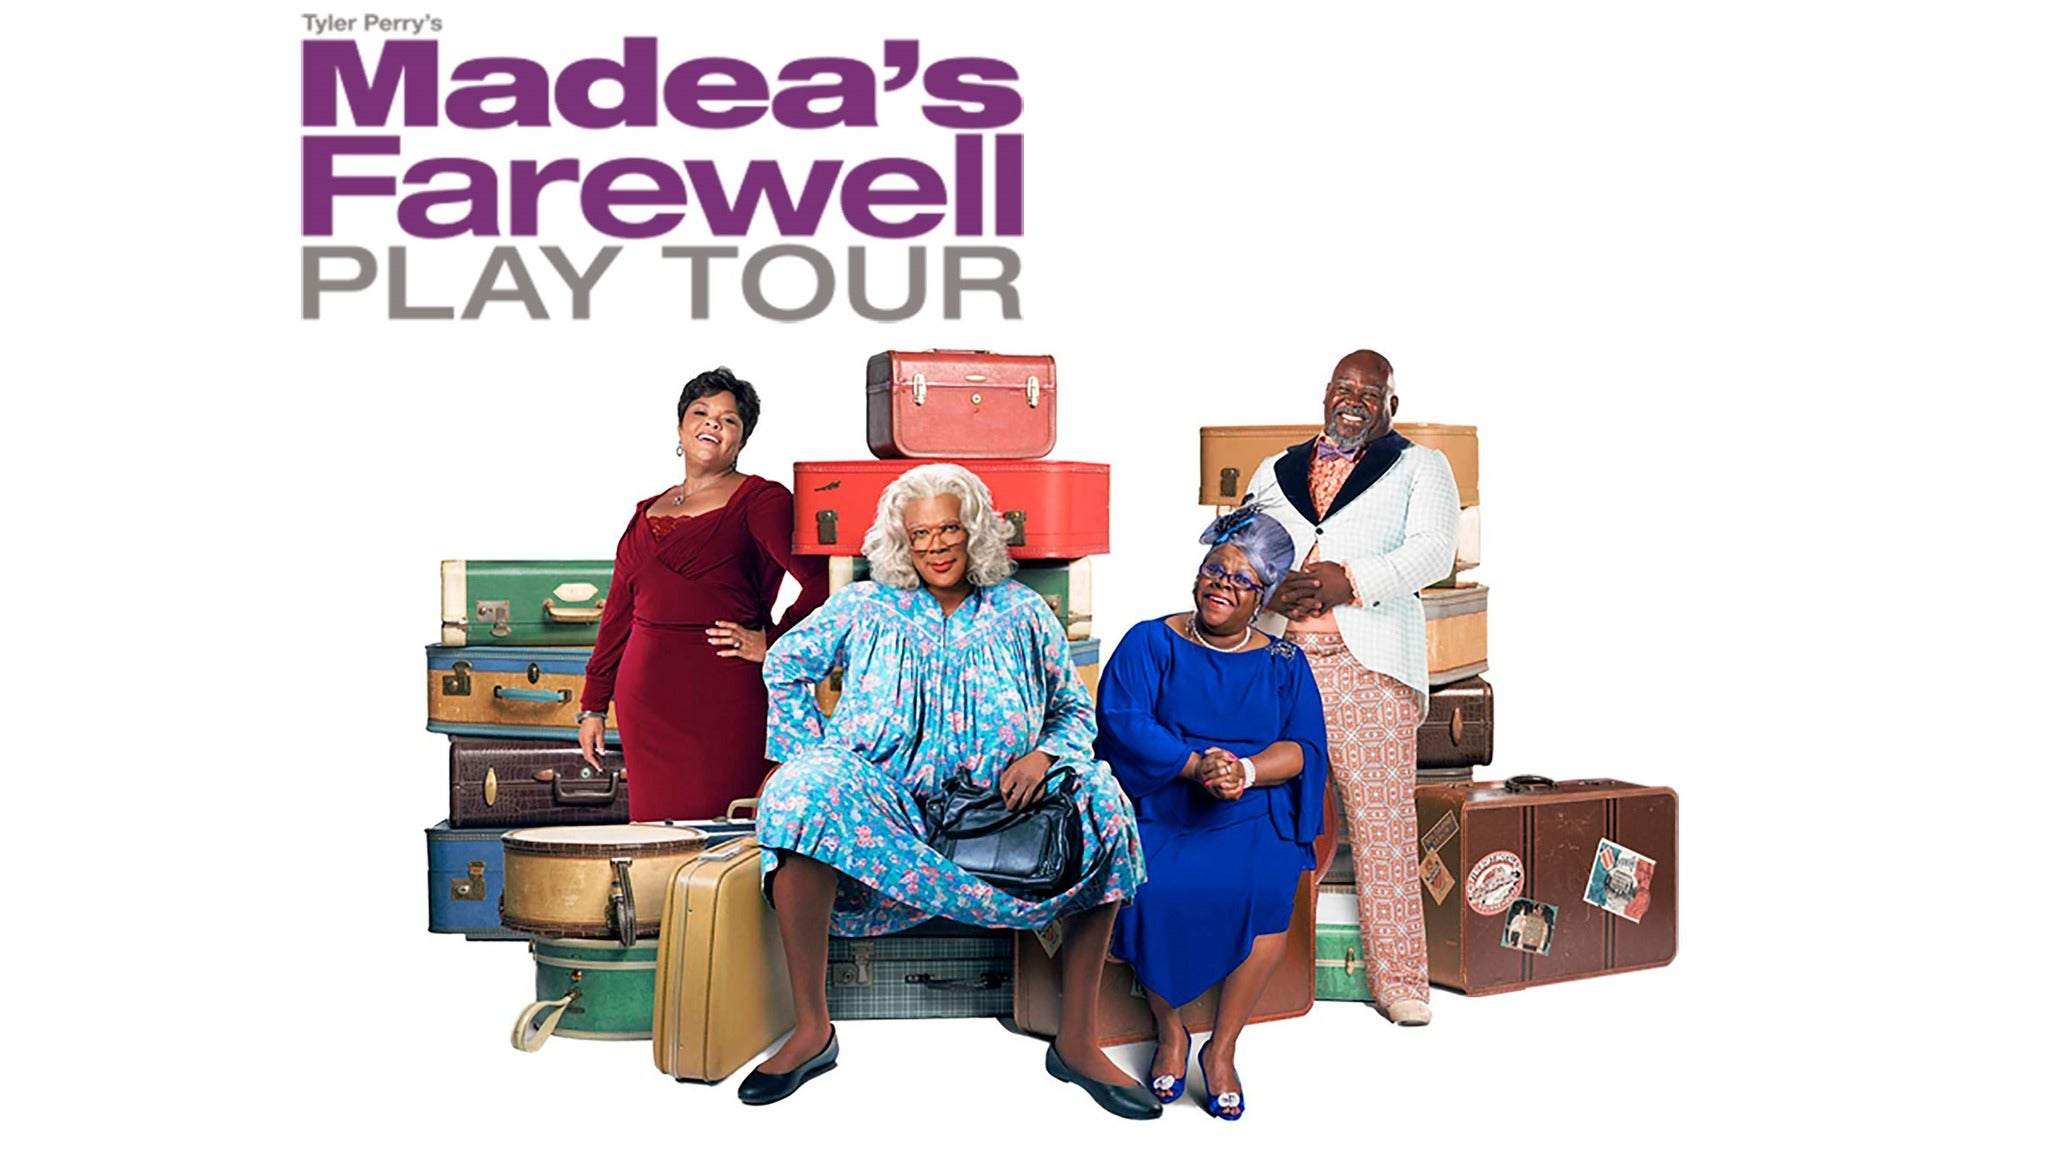 Tyler Perry's Madea's Farewell Play Tour at Thalia Mara Hall